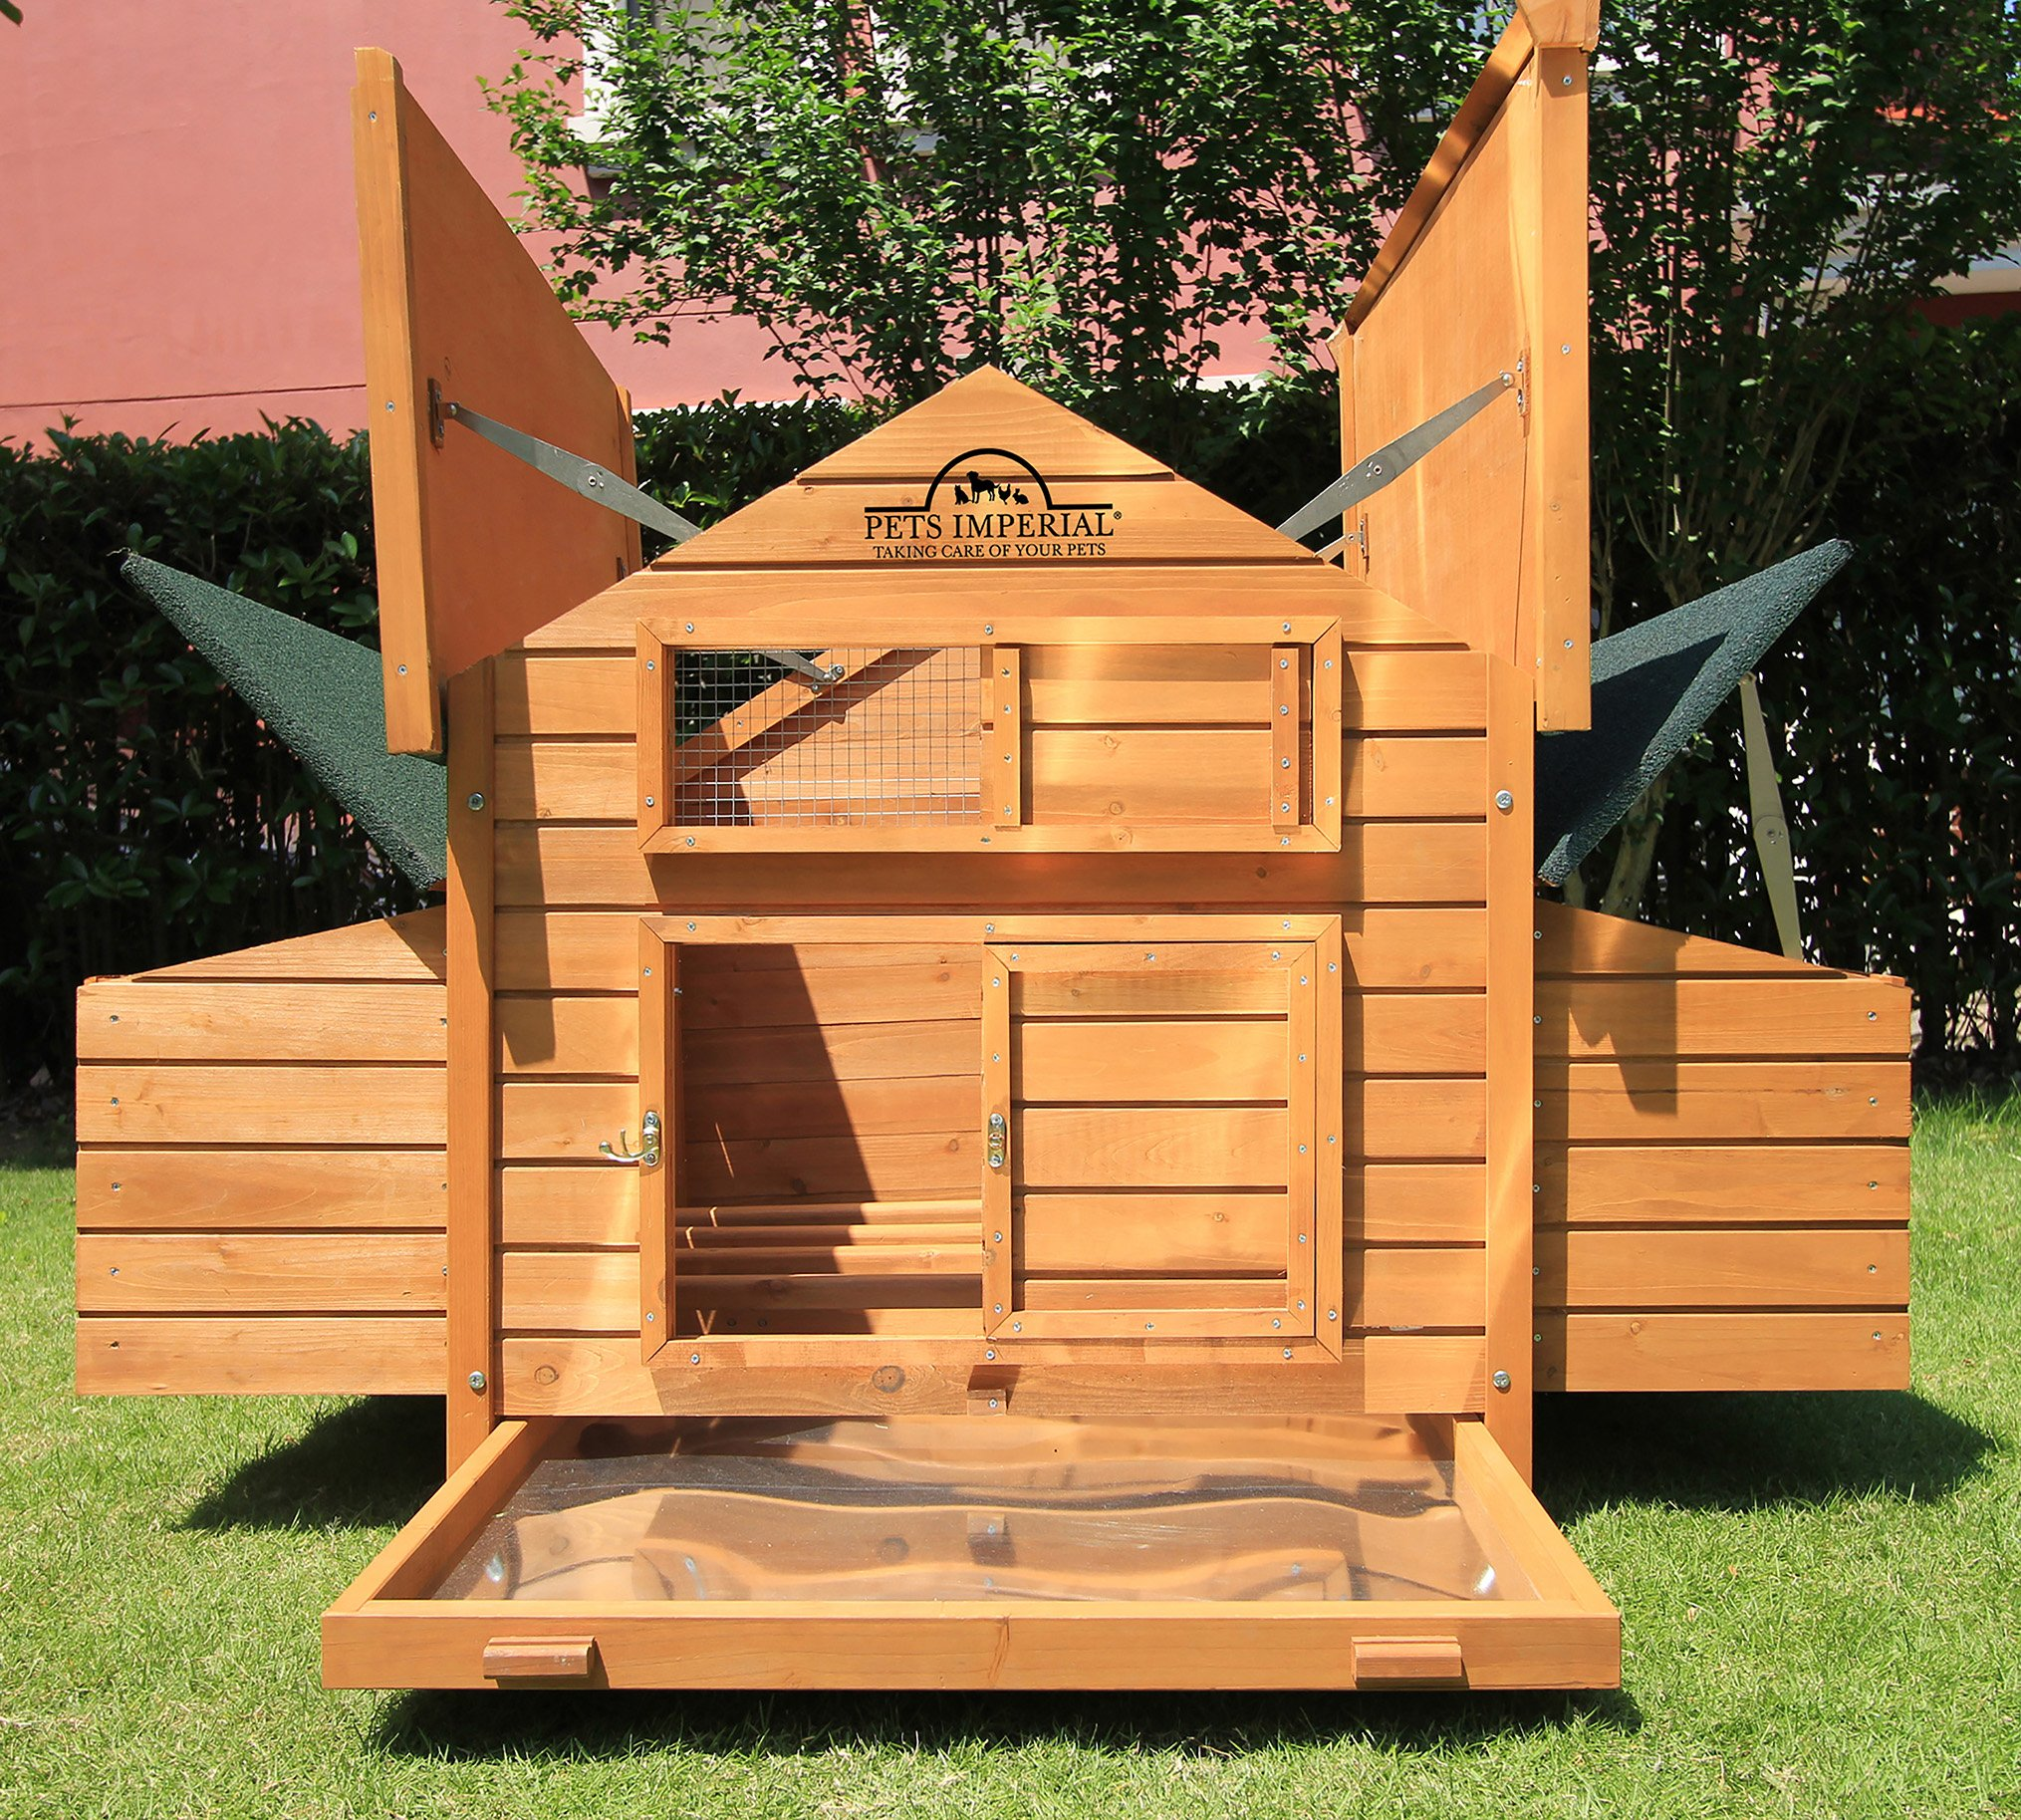 Pets Imperial Double Savoy Large Chicken Coop With 2 Nest Boxes Suitable Up To 10 Birds